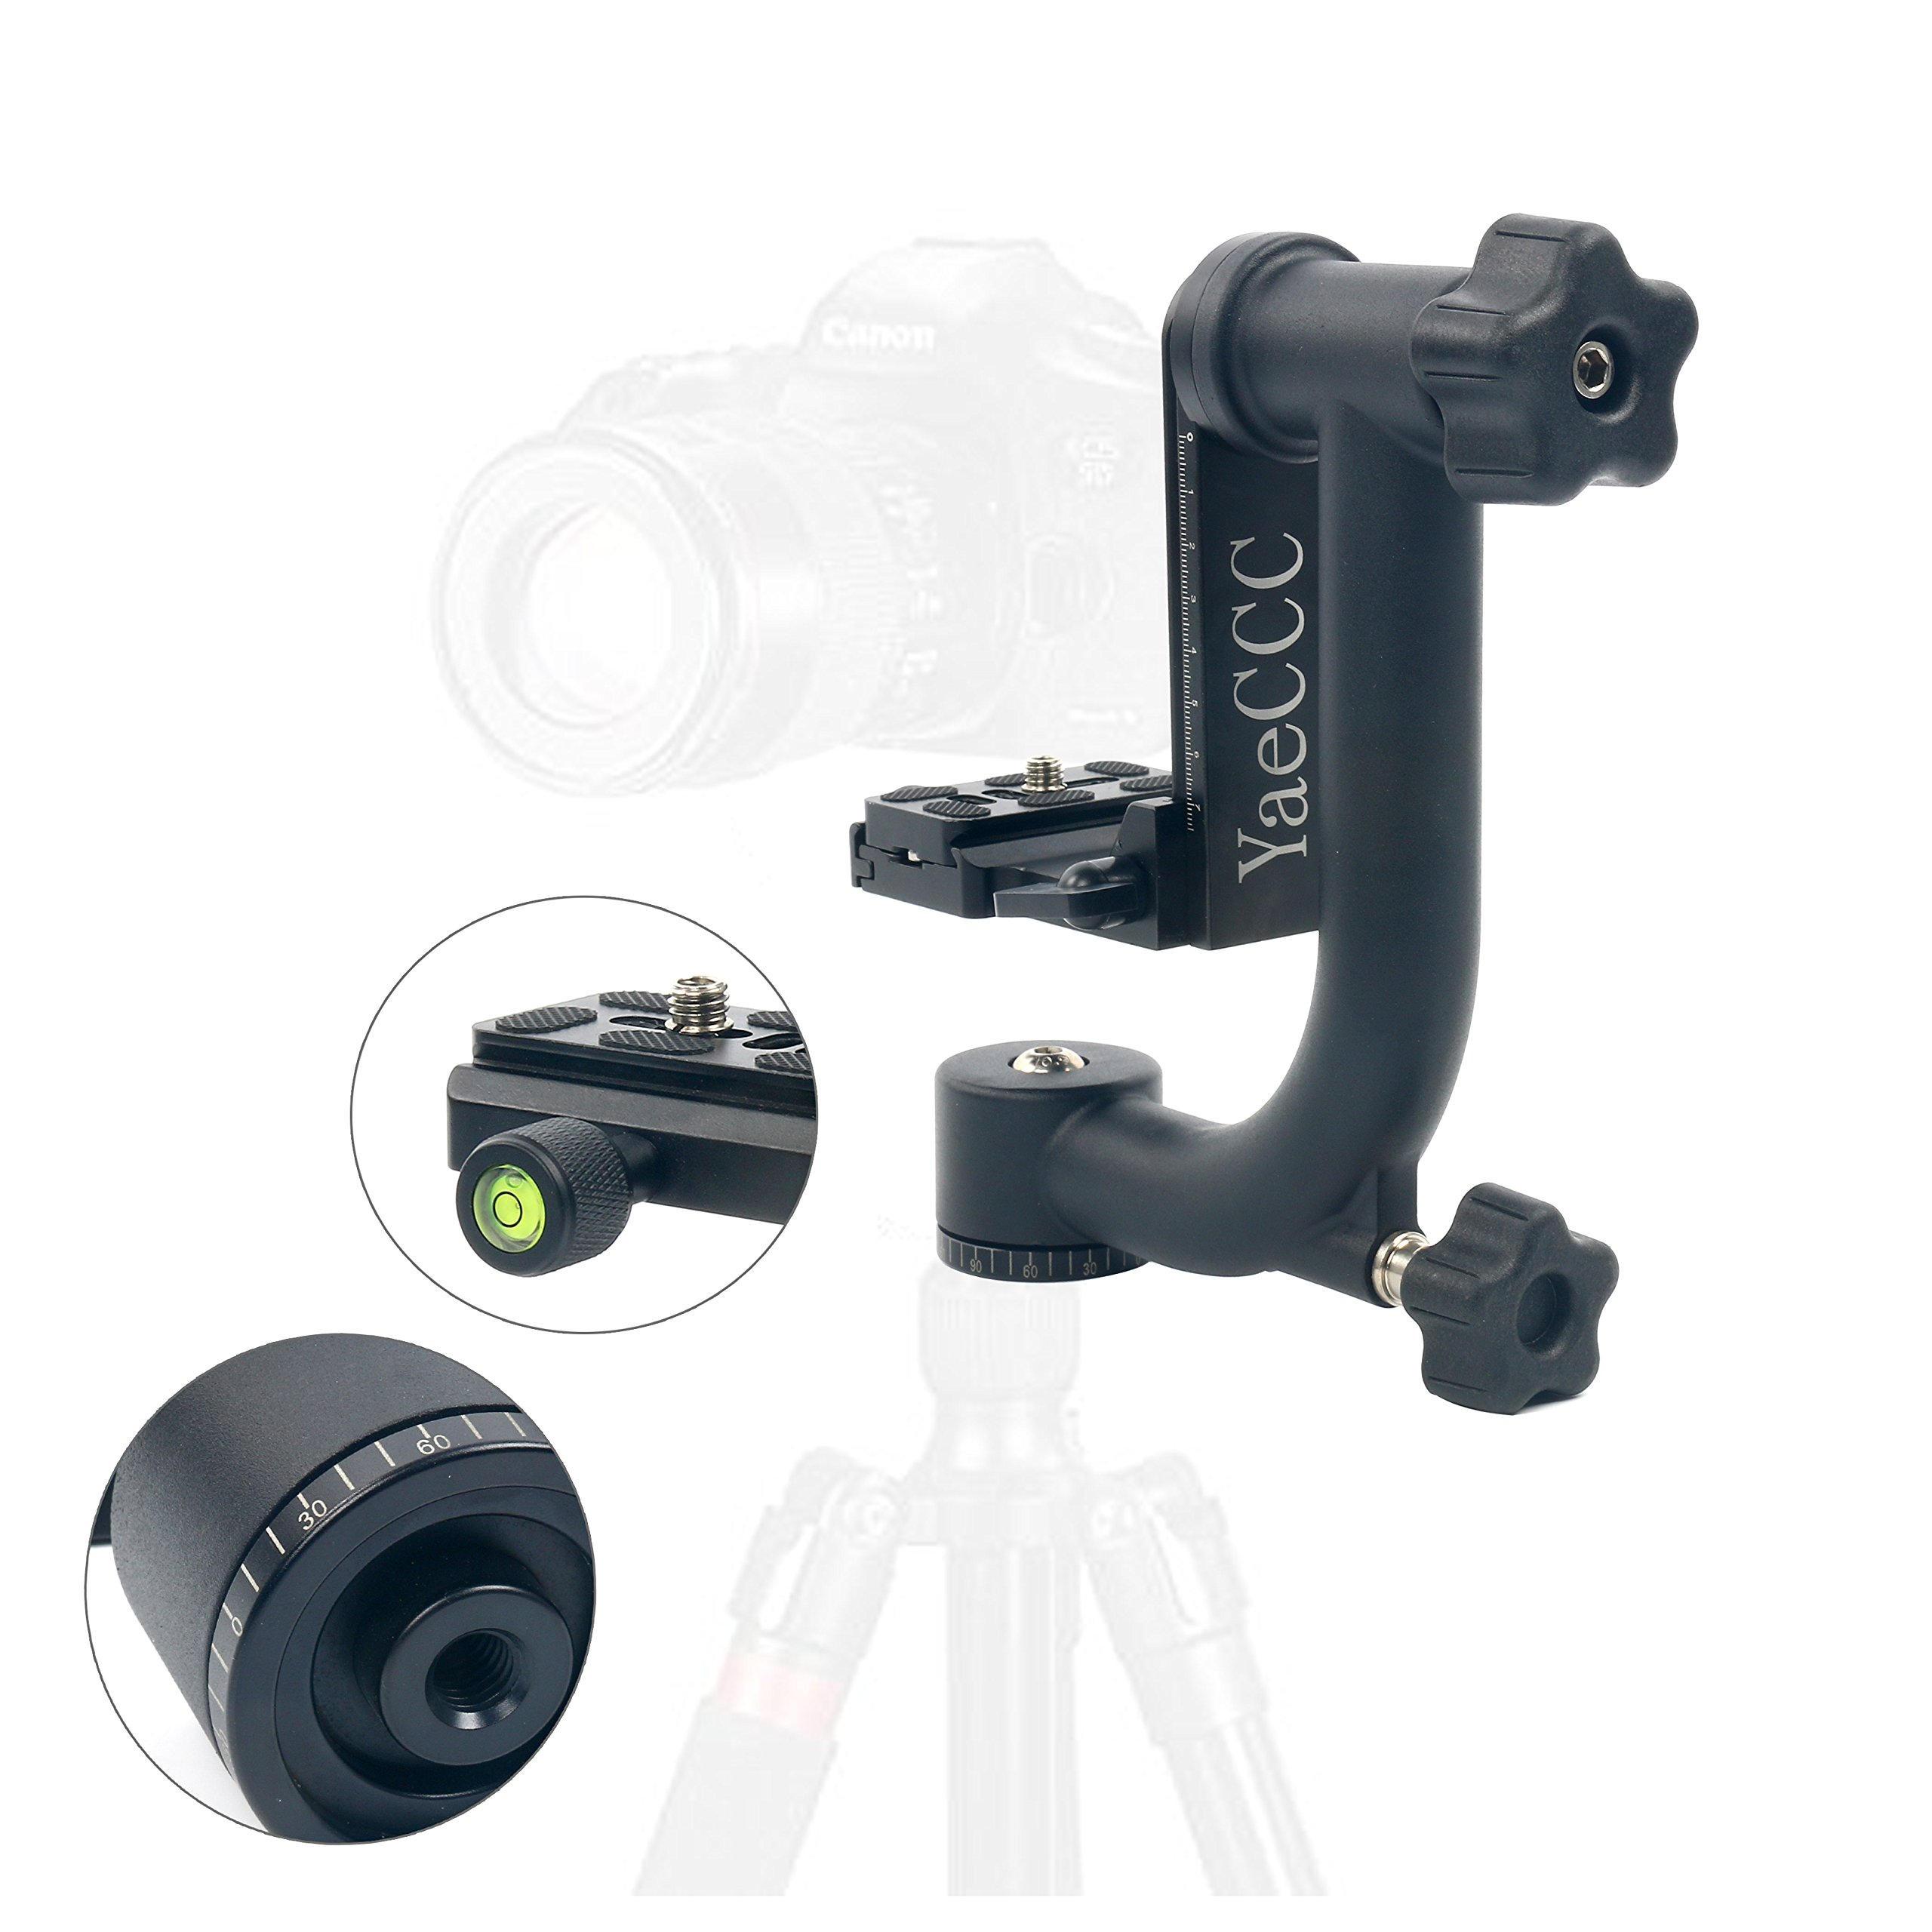 YaeCCC Professional Heavy Duty Metal 360 degree Panoramic Gimbal Tripod Head with Arca-Swiss Standard 1/4'' Quick Release Plate for Digital SLR Cameras up to 30lbs/13.6 kg by YaeCCC